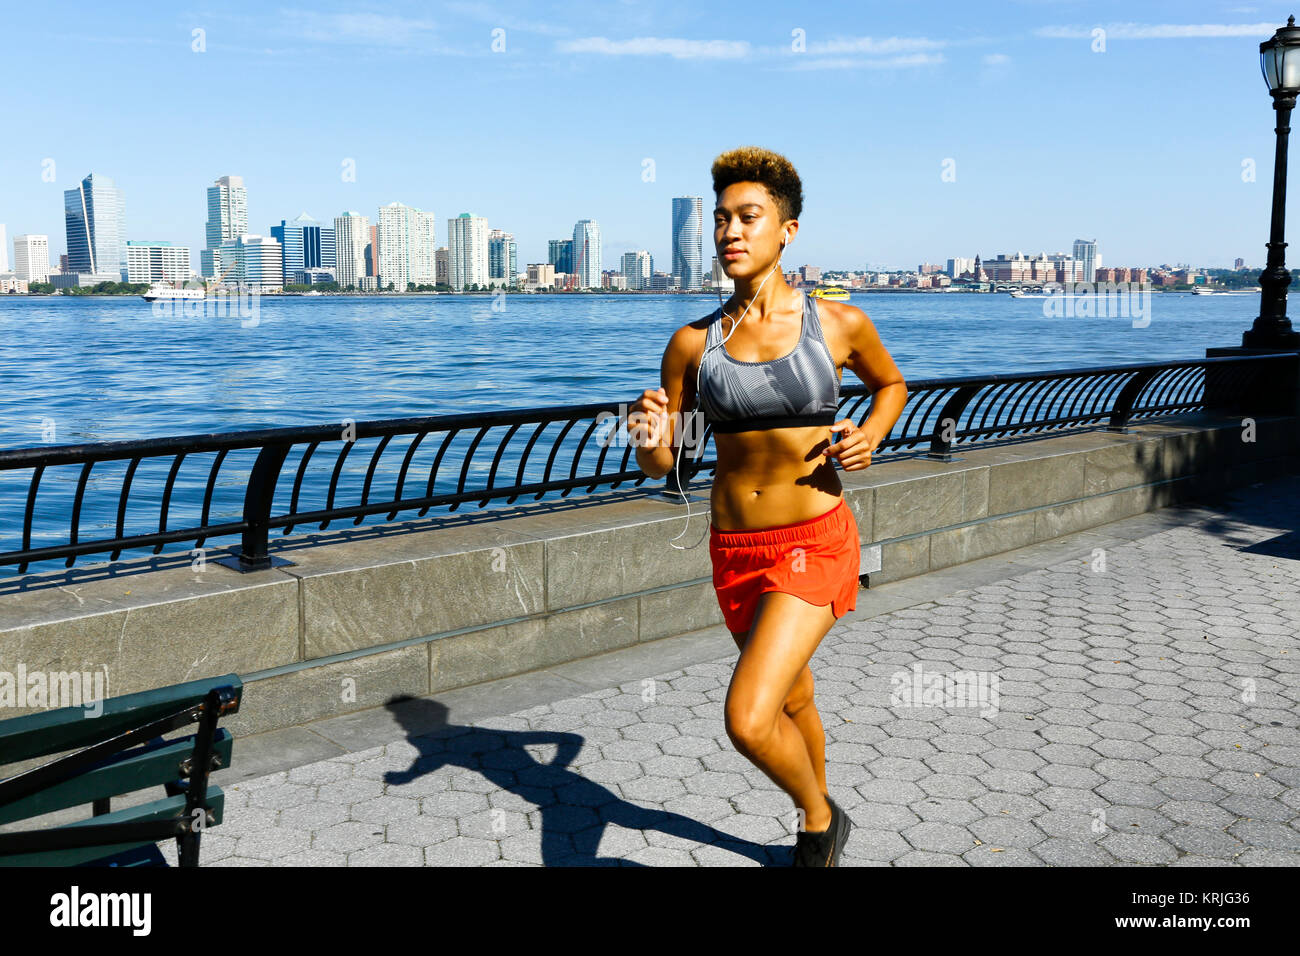 Mixed race woman running at waterfront listening to earbuds - Stock Image